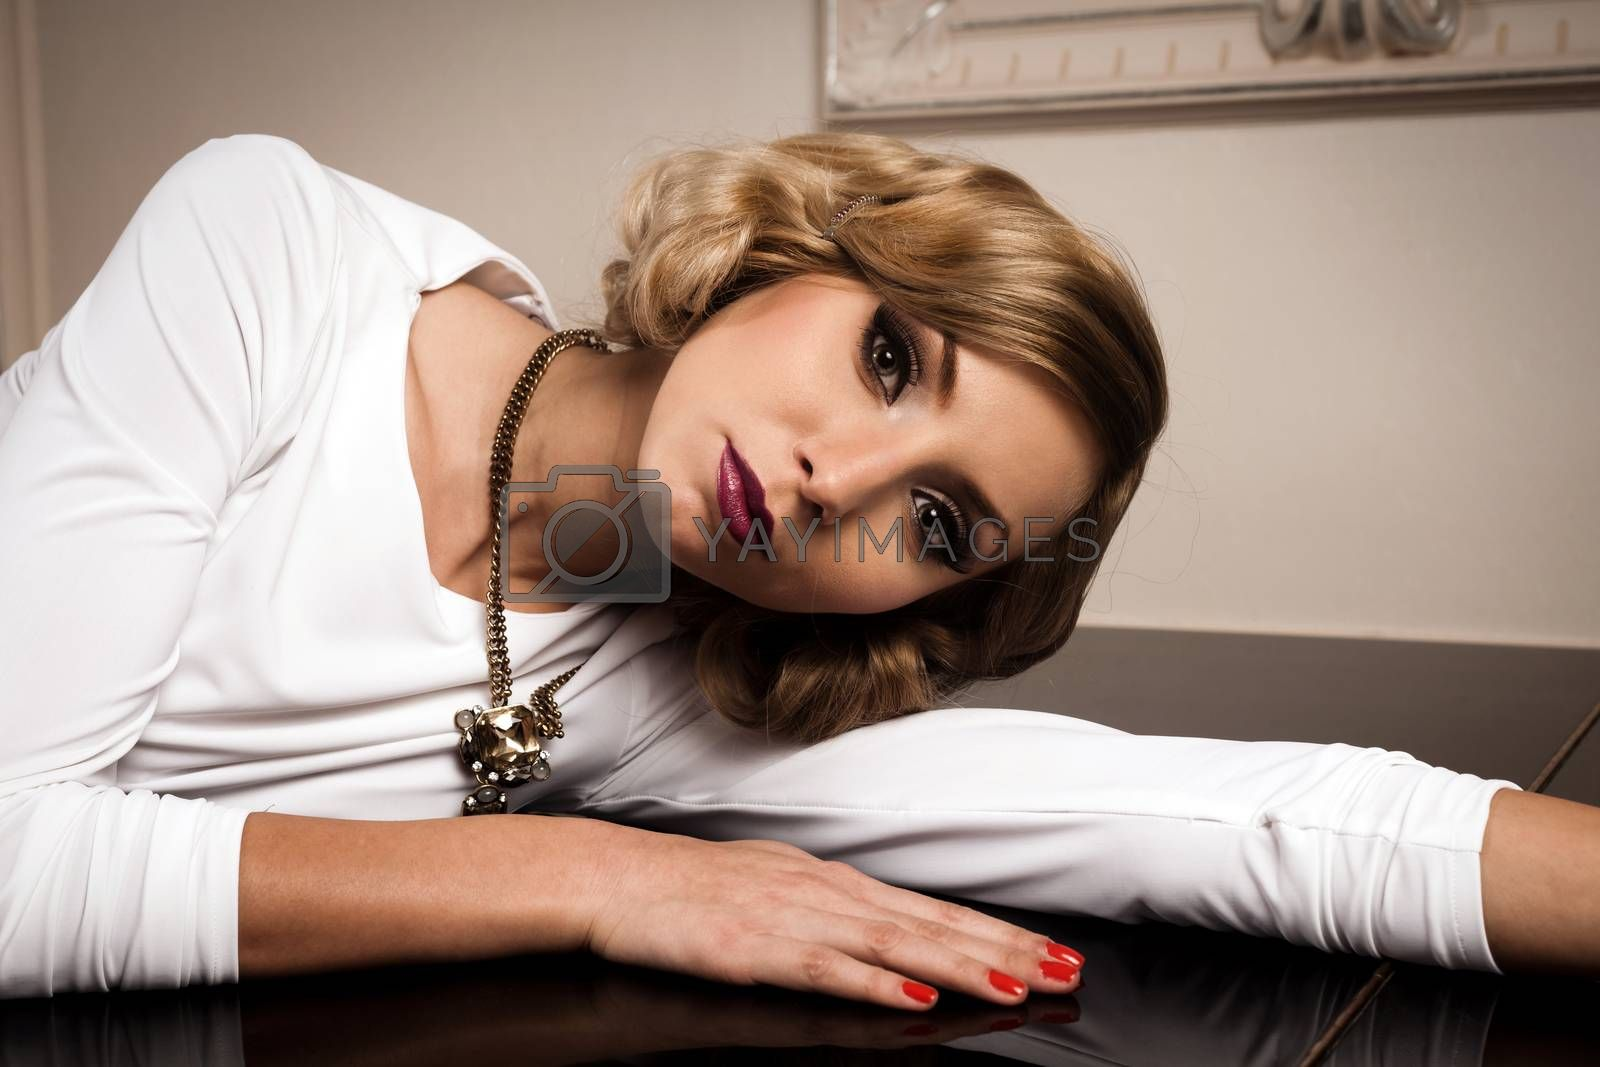 Lovely blond woman portrait. Please see more images from the same shoot.